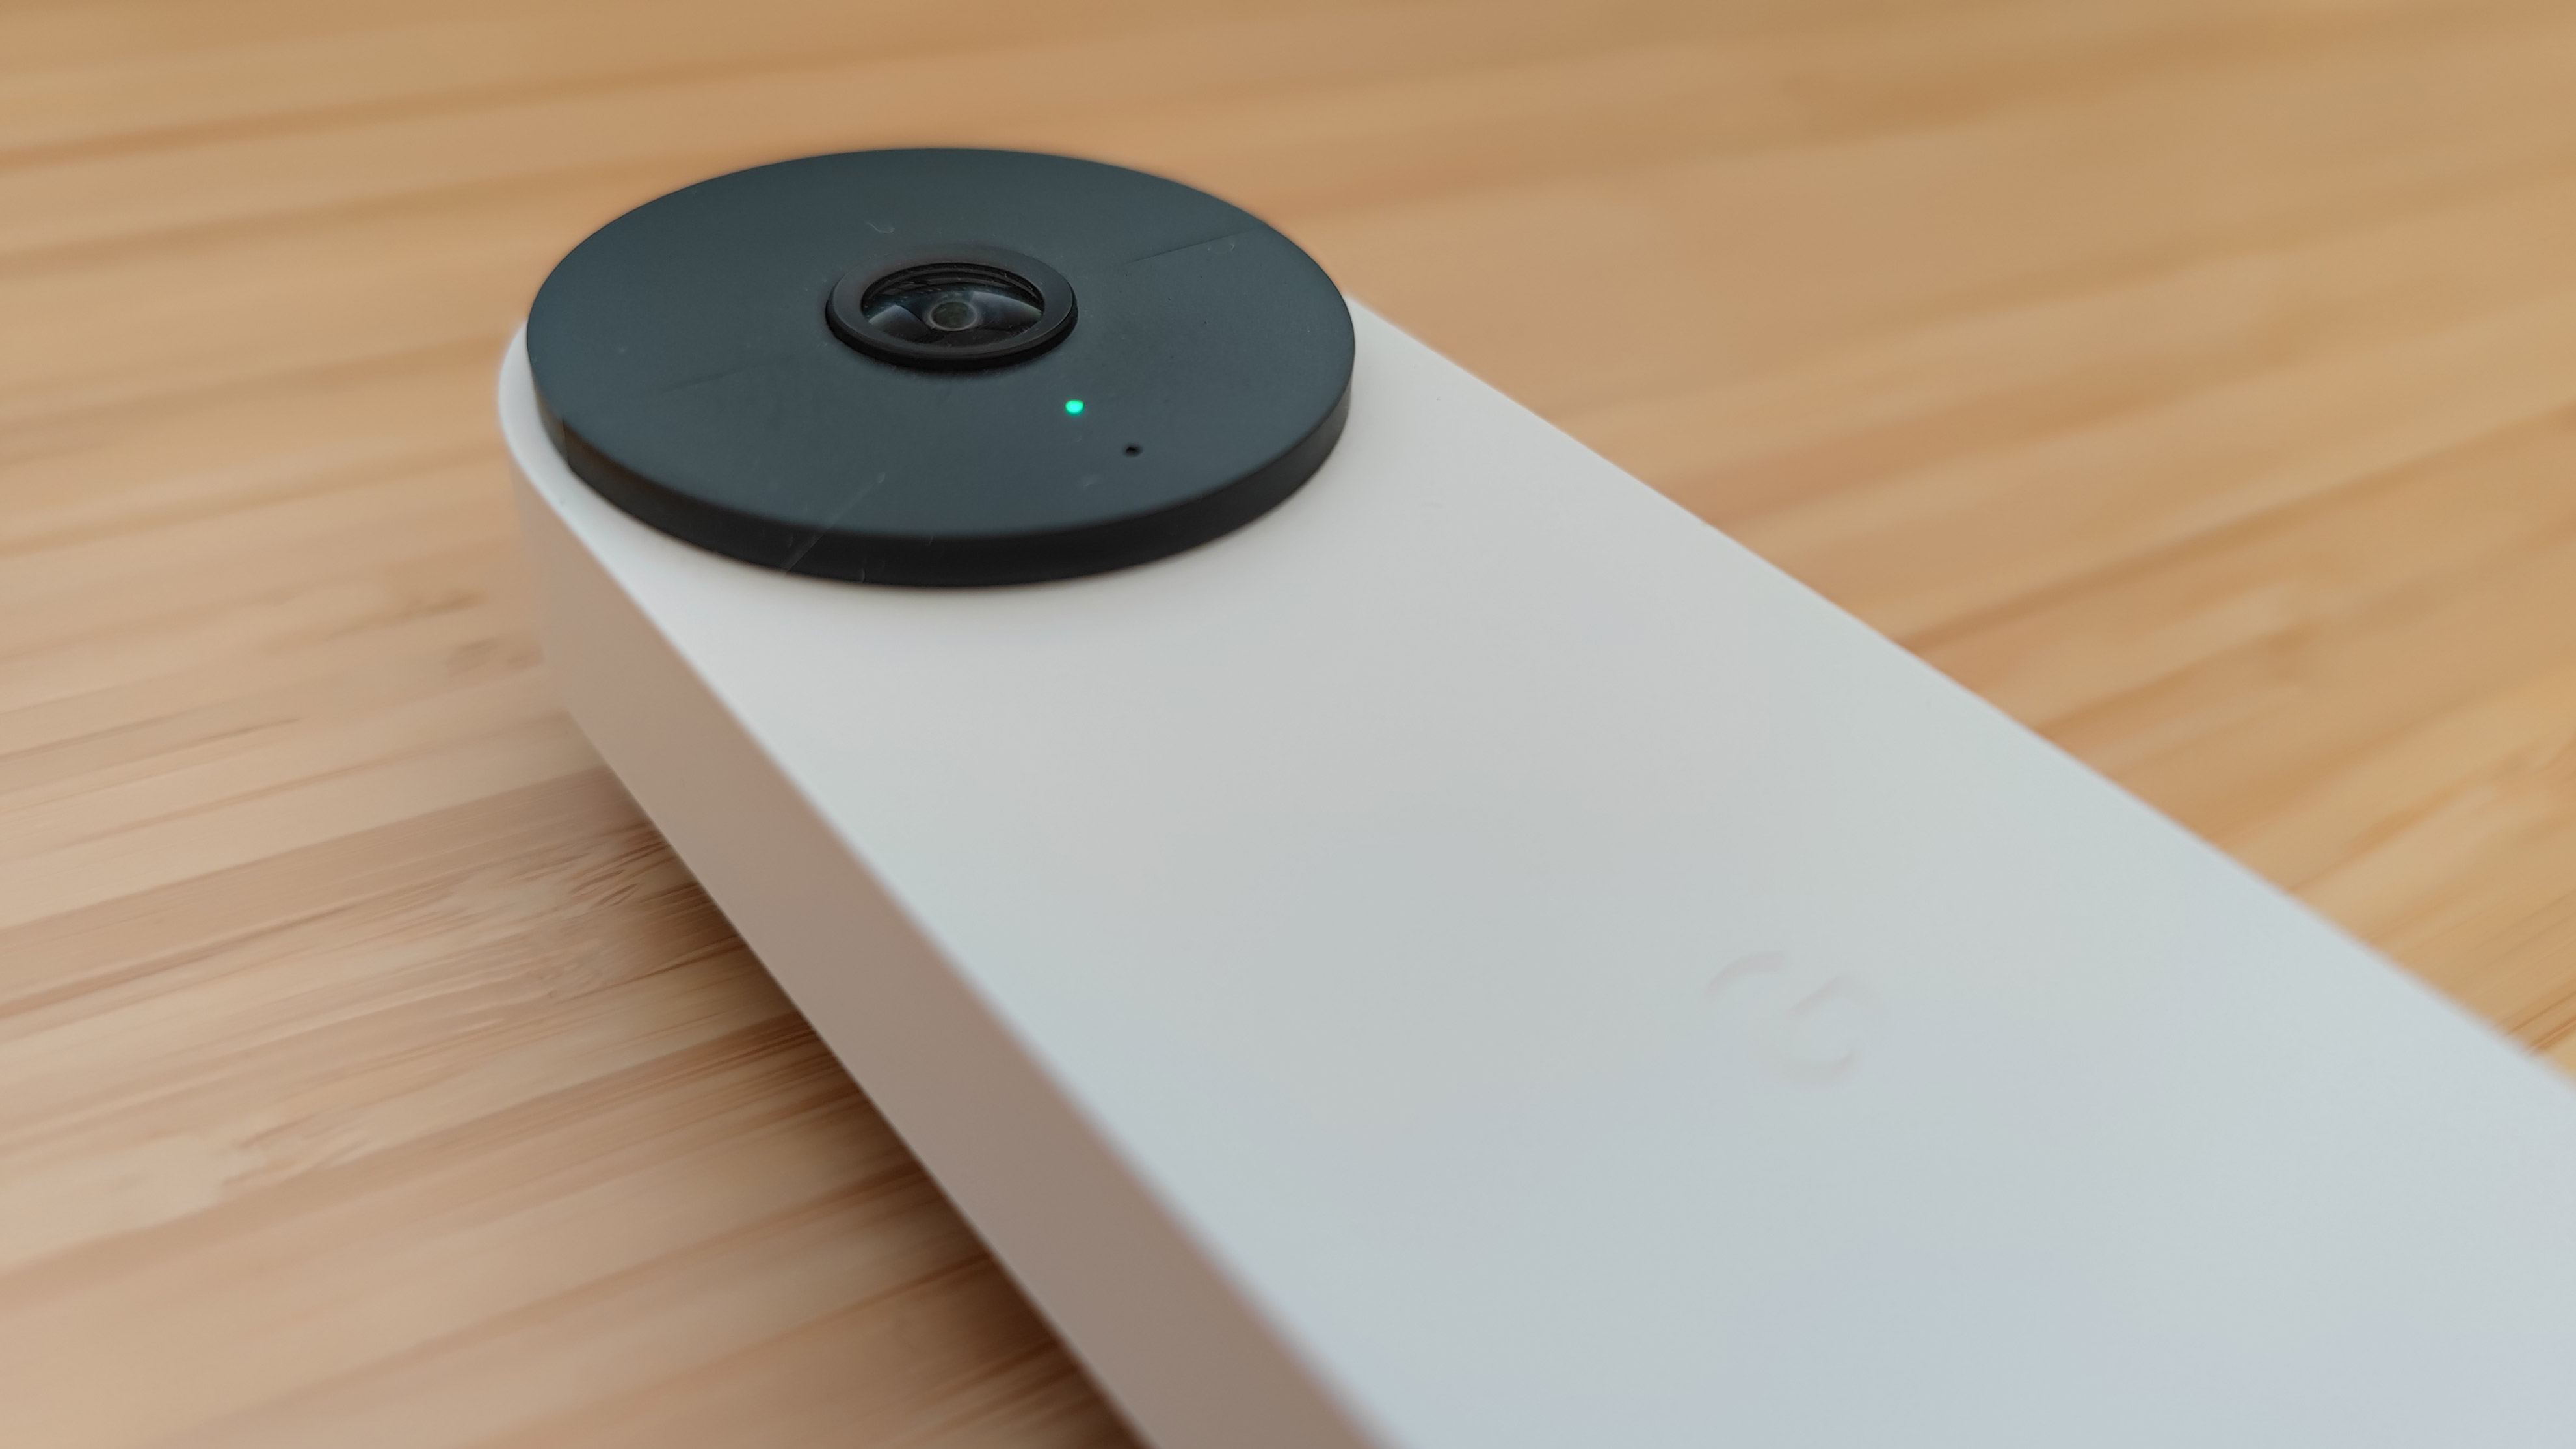 A close up of the camera len on the Google Nest Doorbell (battery)